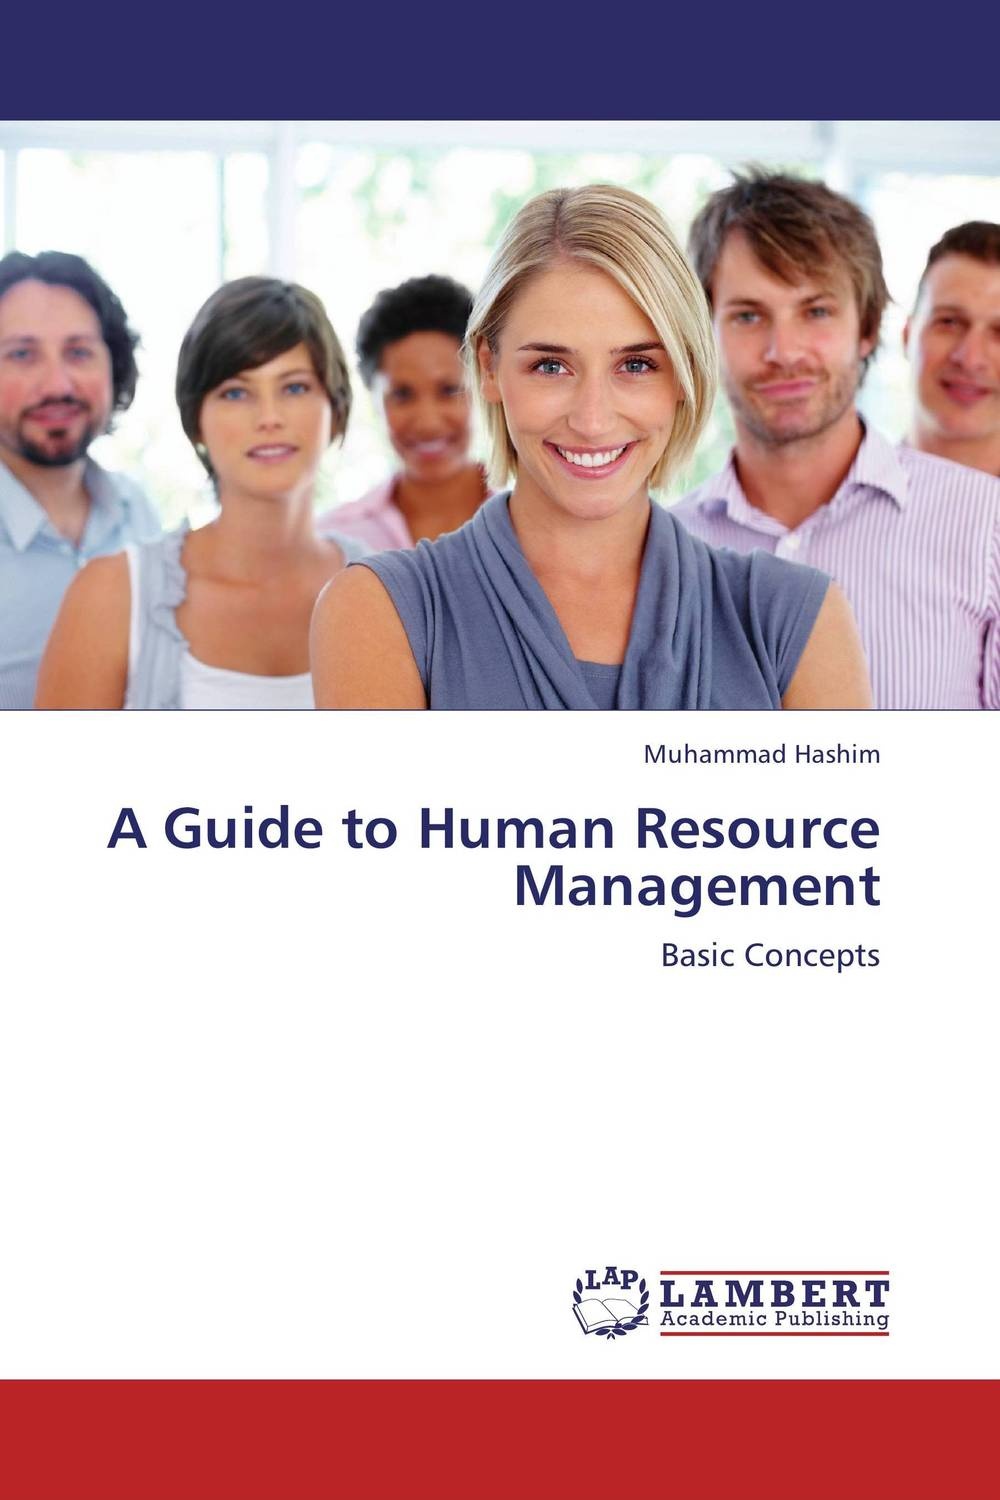 A Guide to Human Resource Management